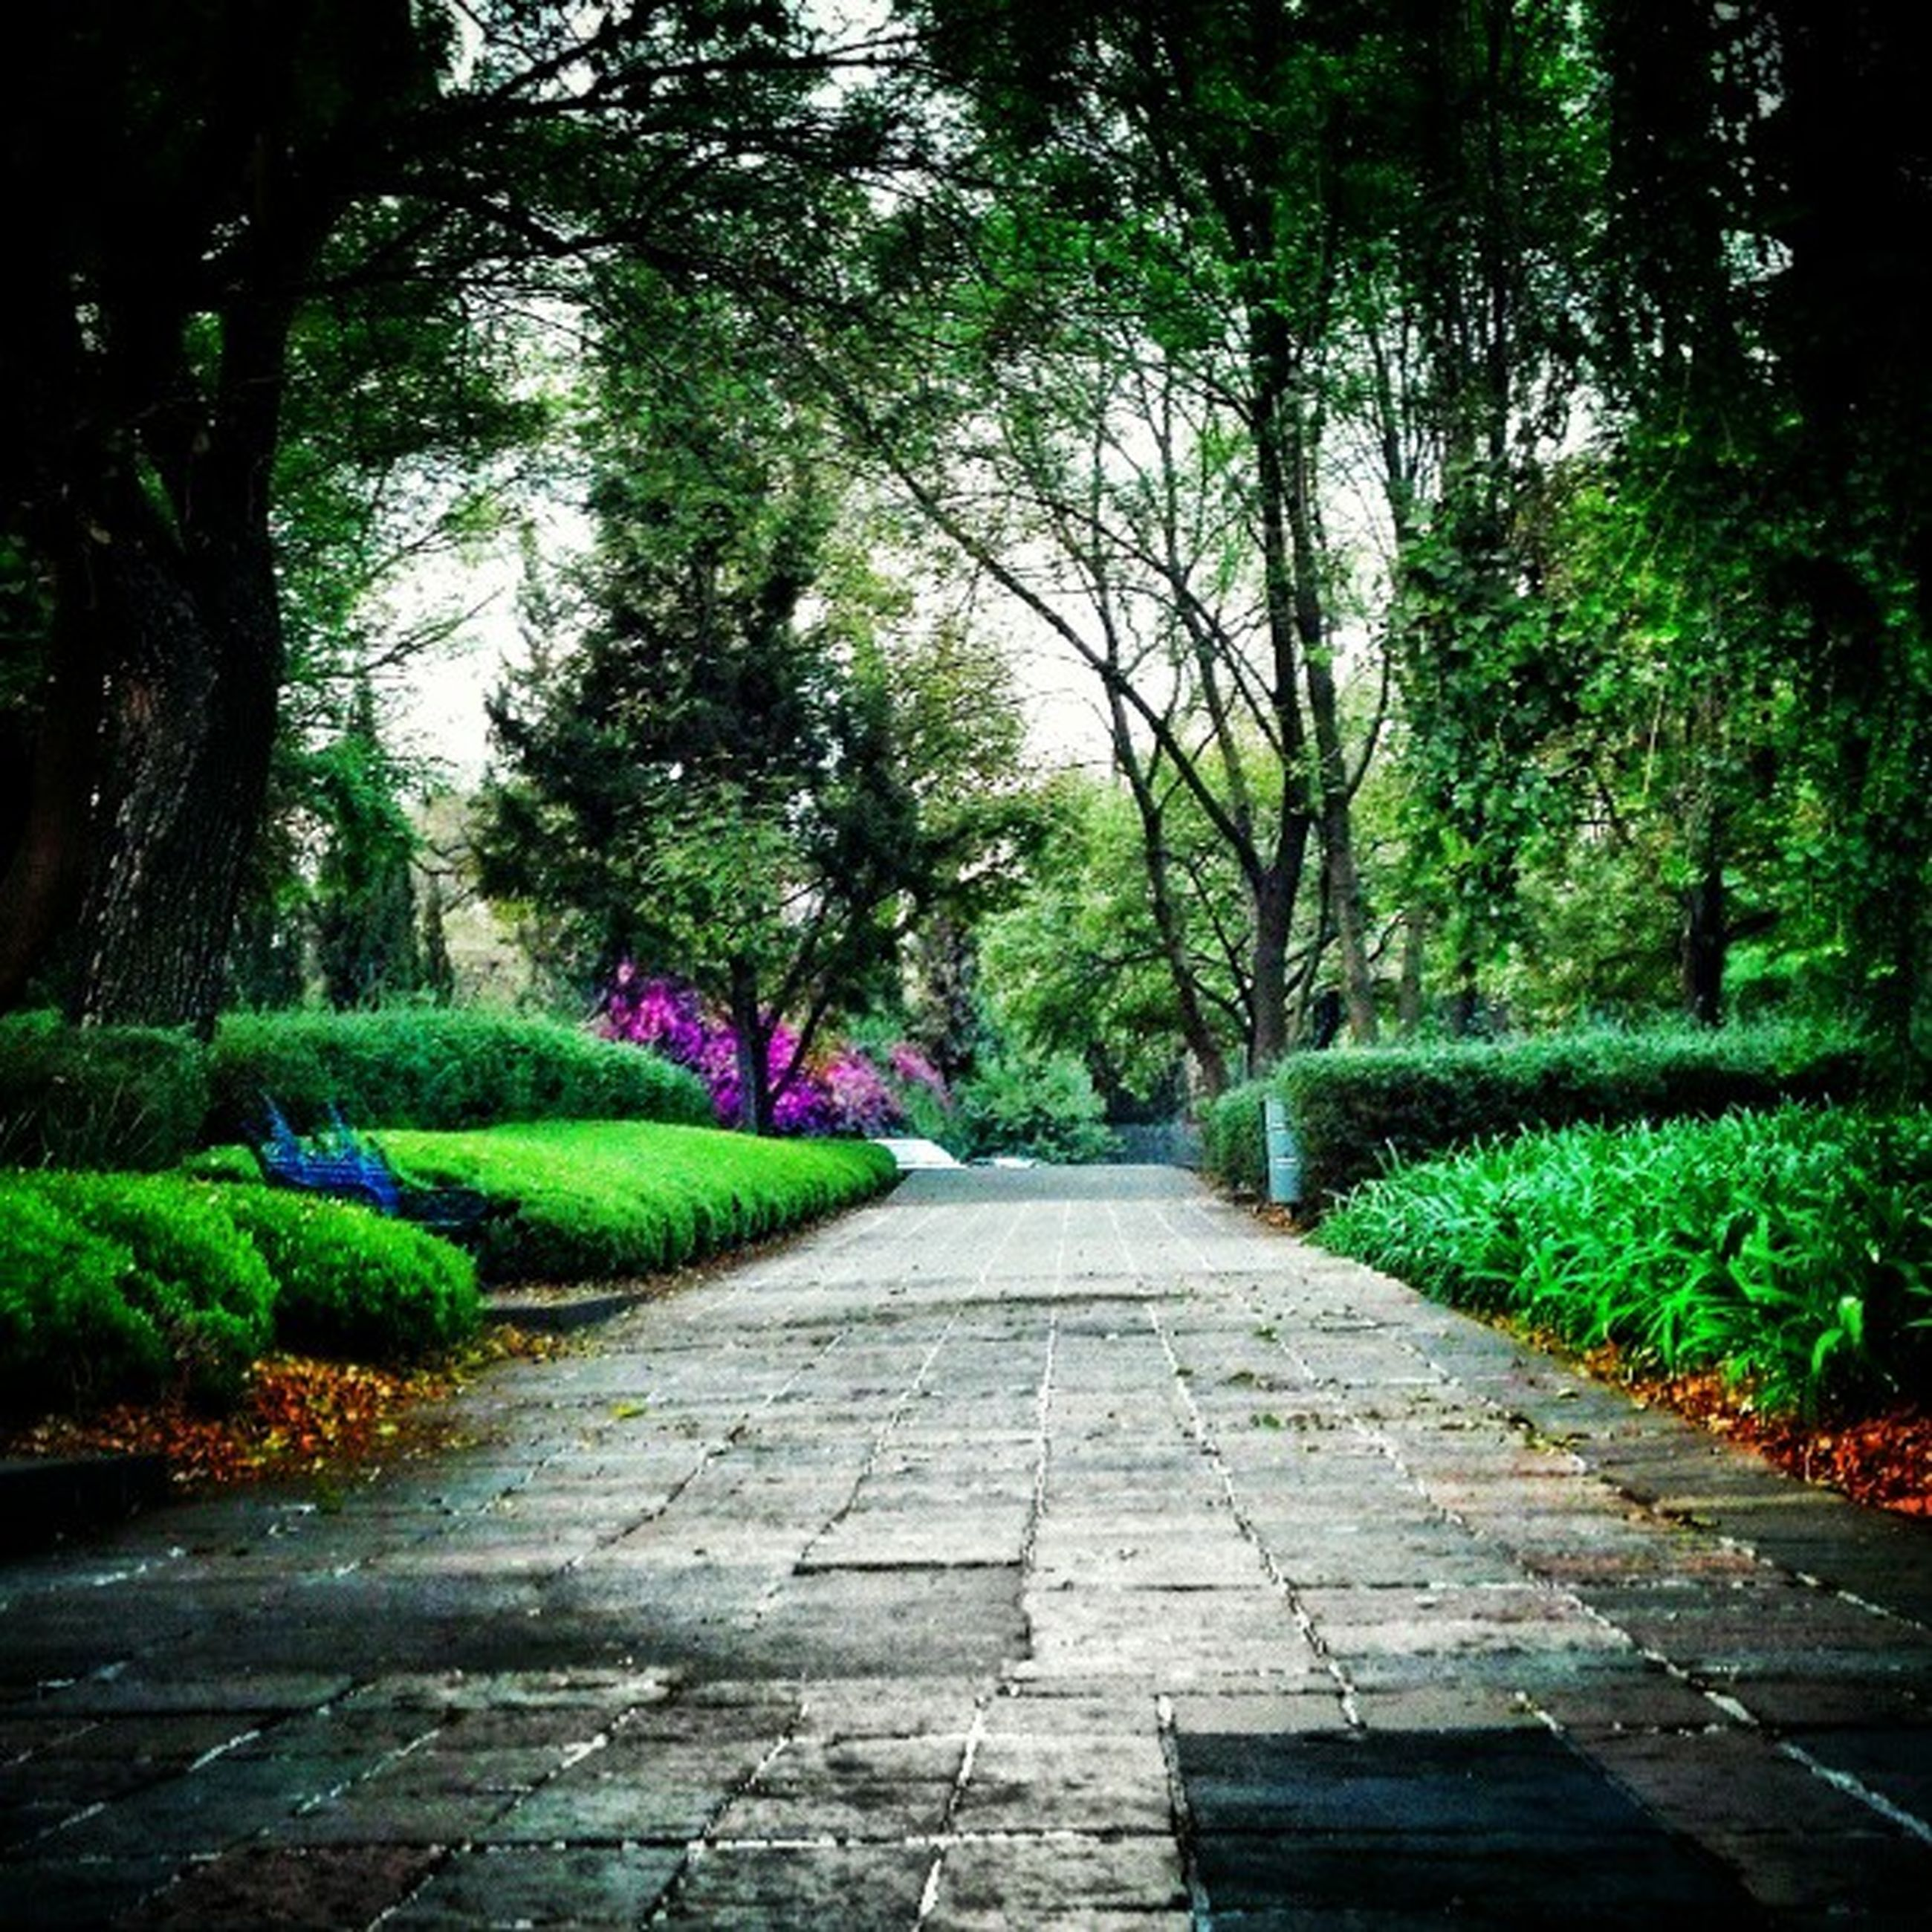 the way forward, tree, growth, green color, footpath, nature, diminishing perspective, tranquility, beauty in nature, walkway, park - man made space, pathway, plant, vanishing point, tranquil scene, lush foliage, narrow, grass, outdoors, scenics